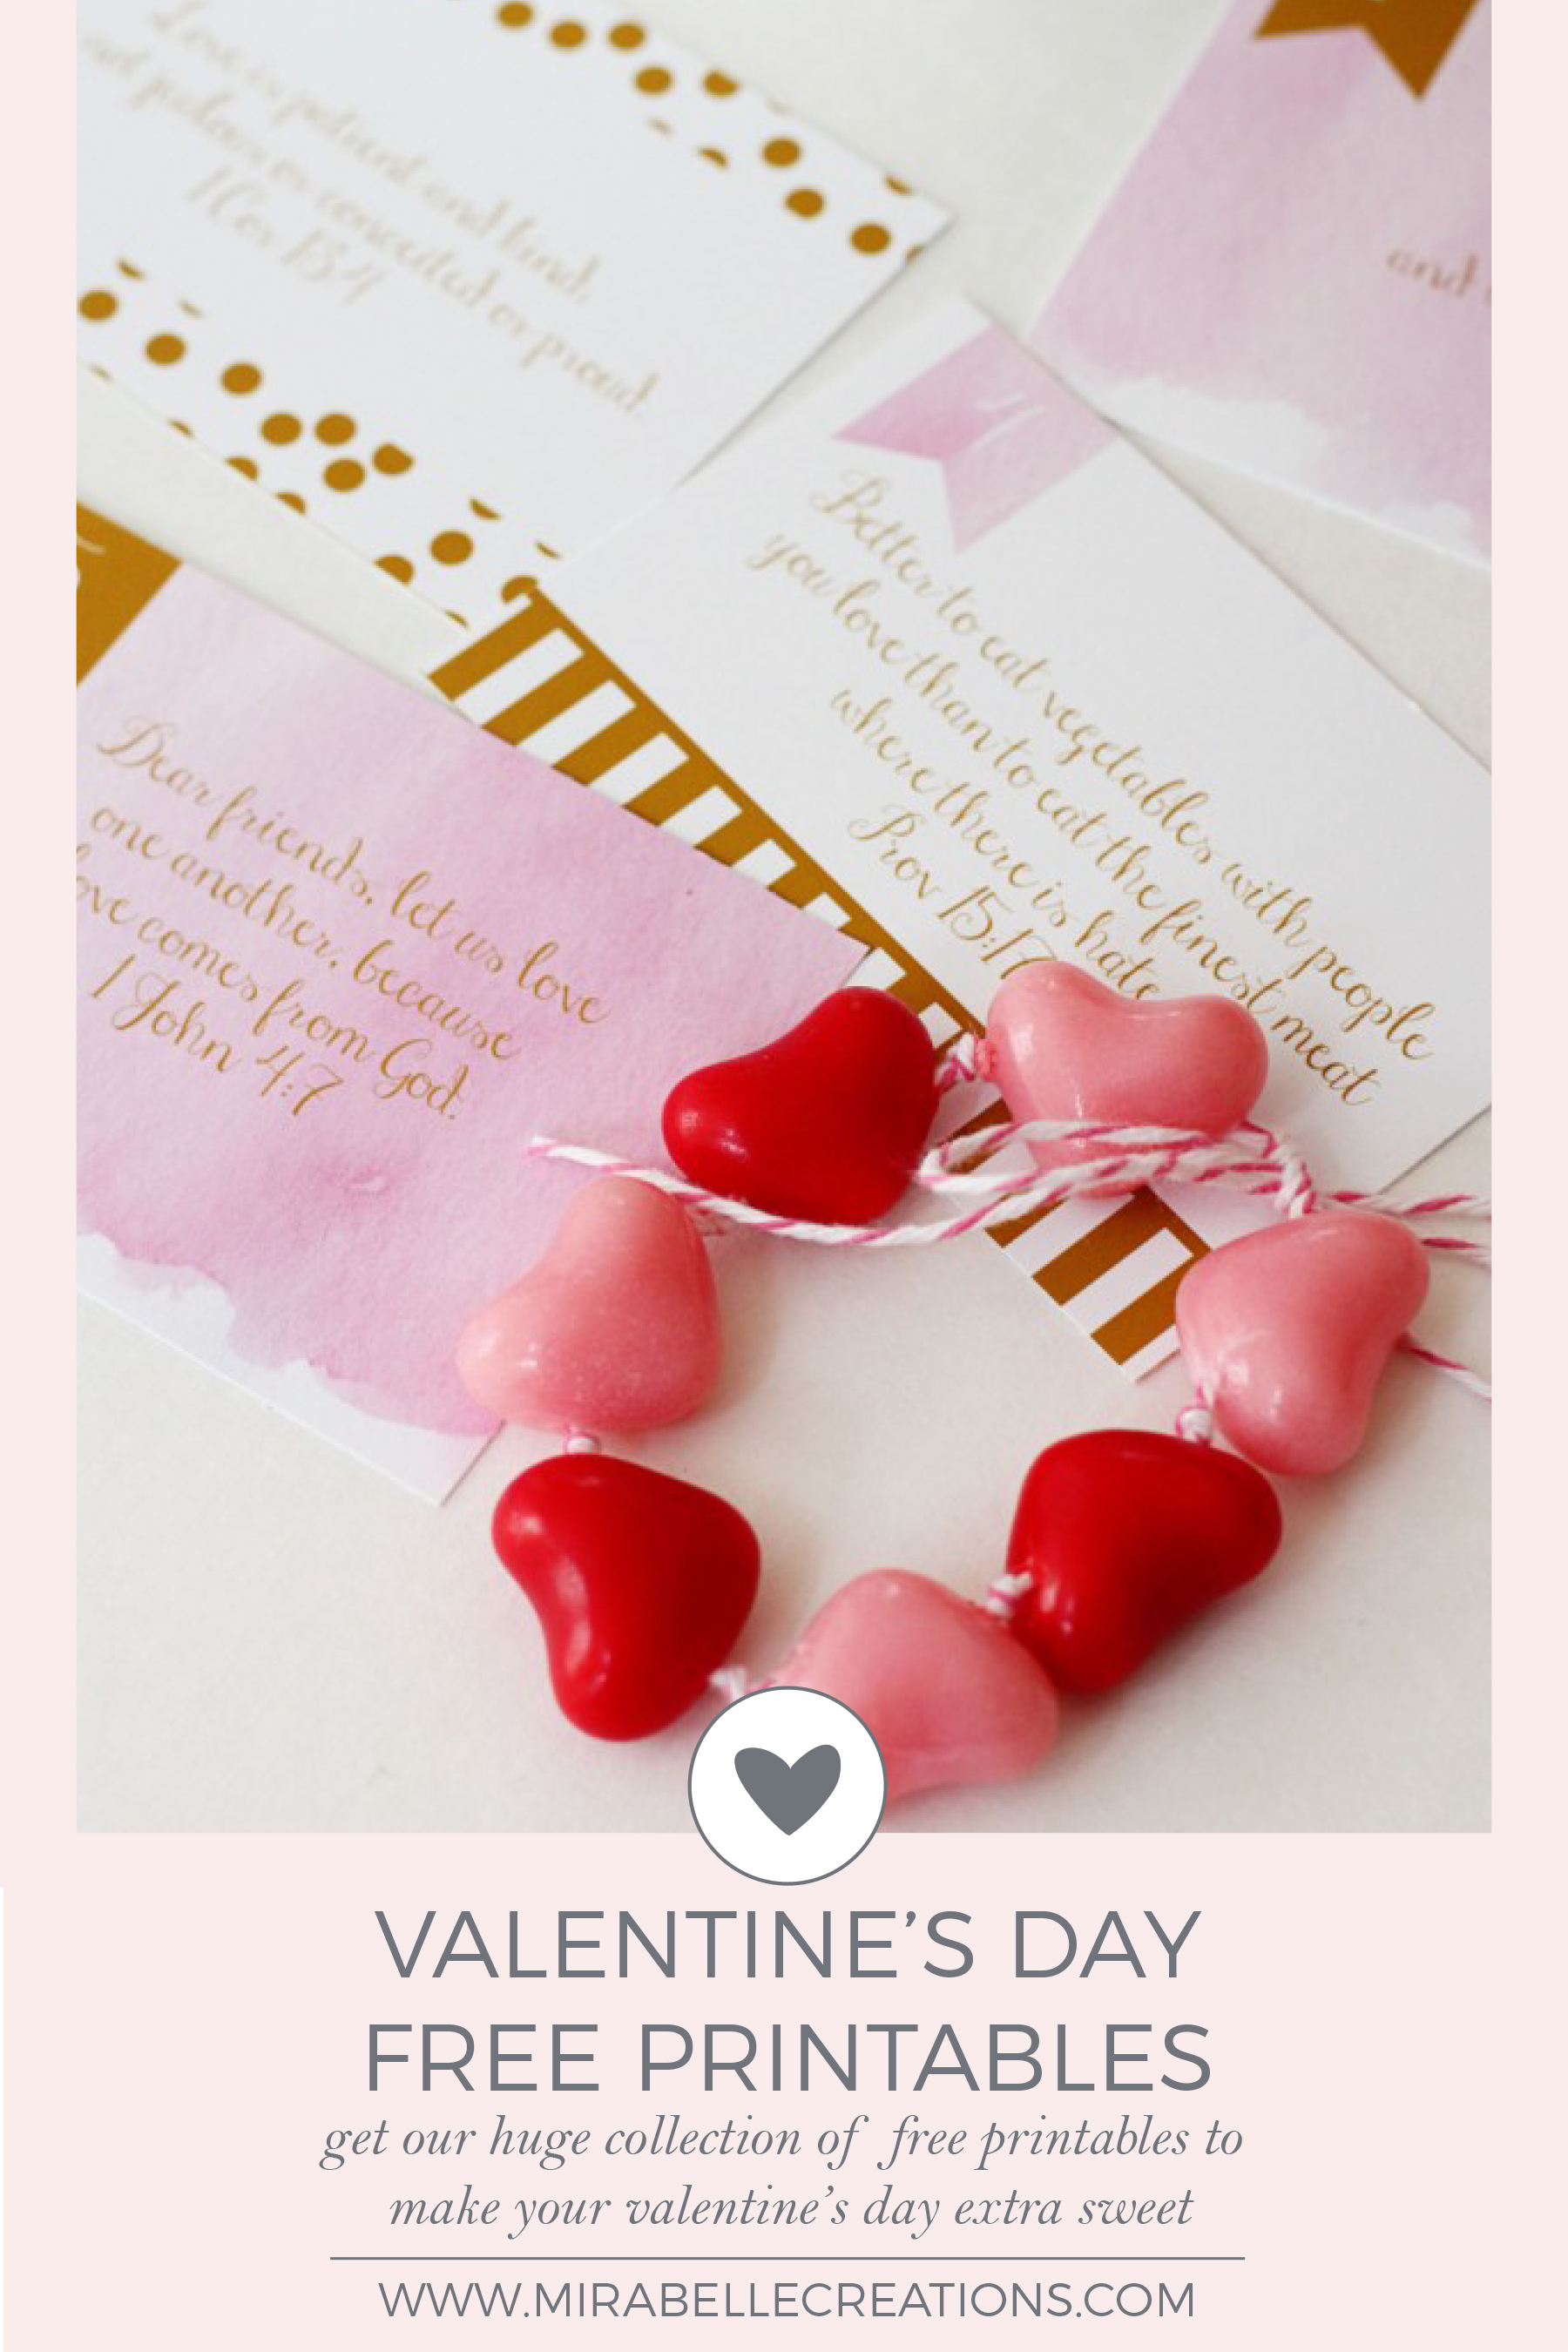 Valentine's-Day-Free-Printables-mirabelle-creations